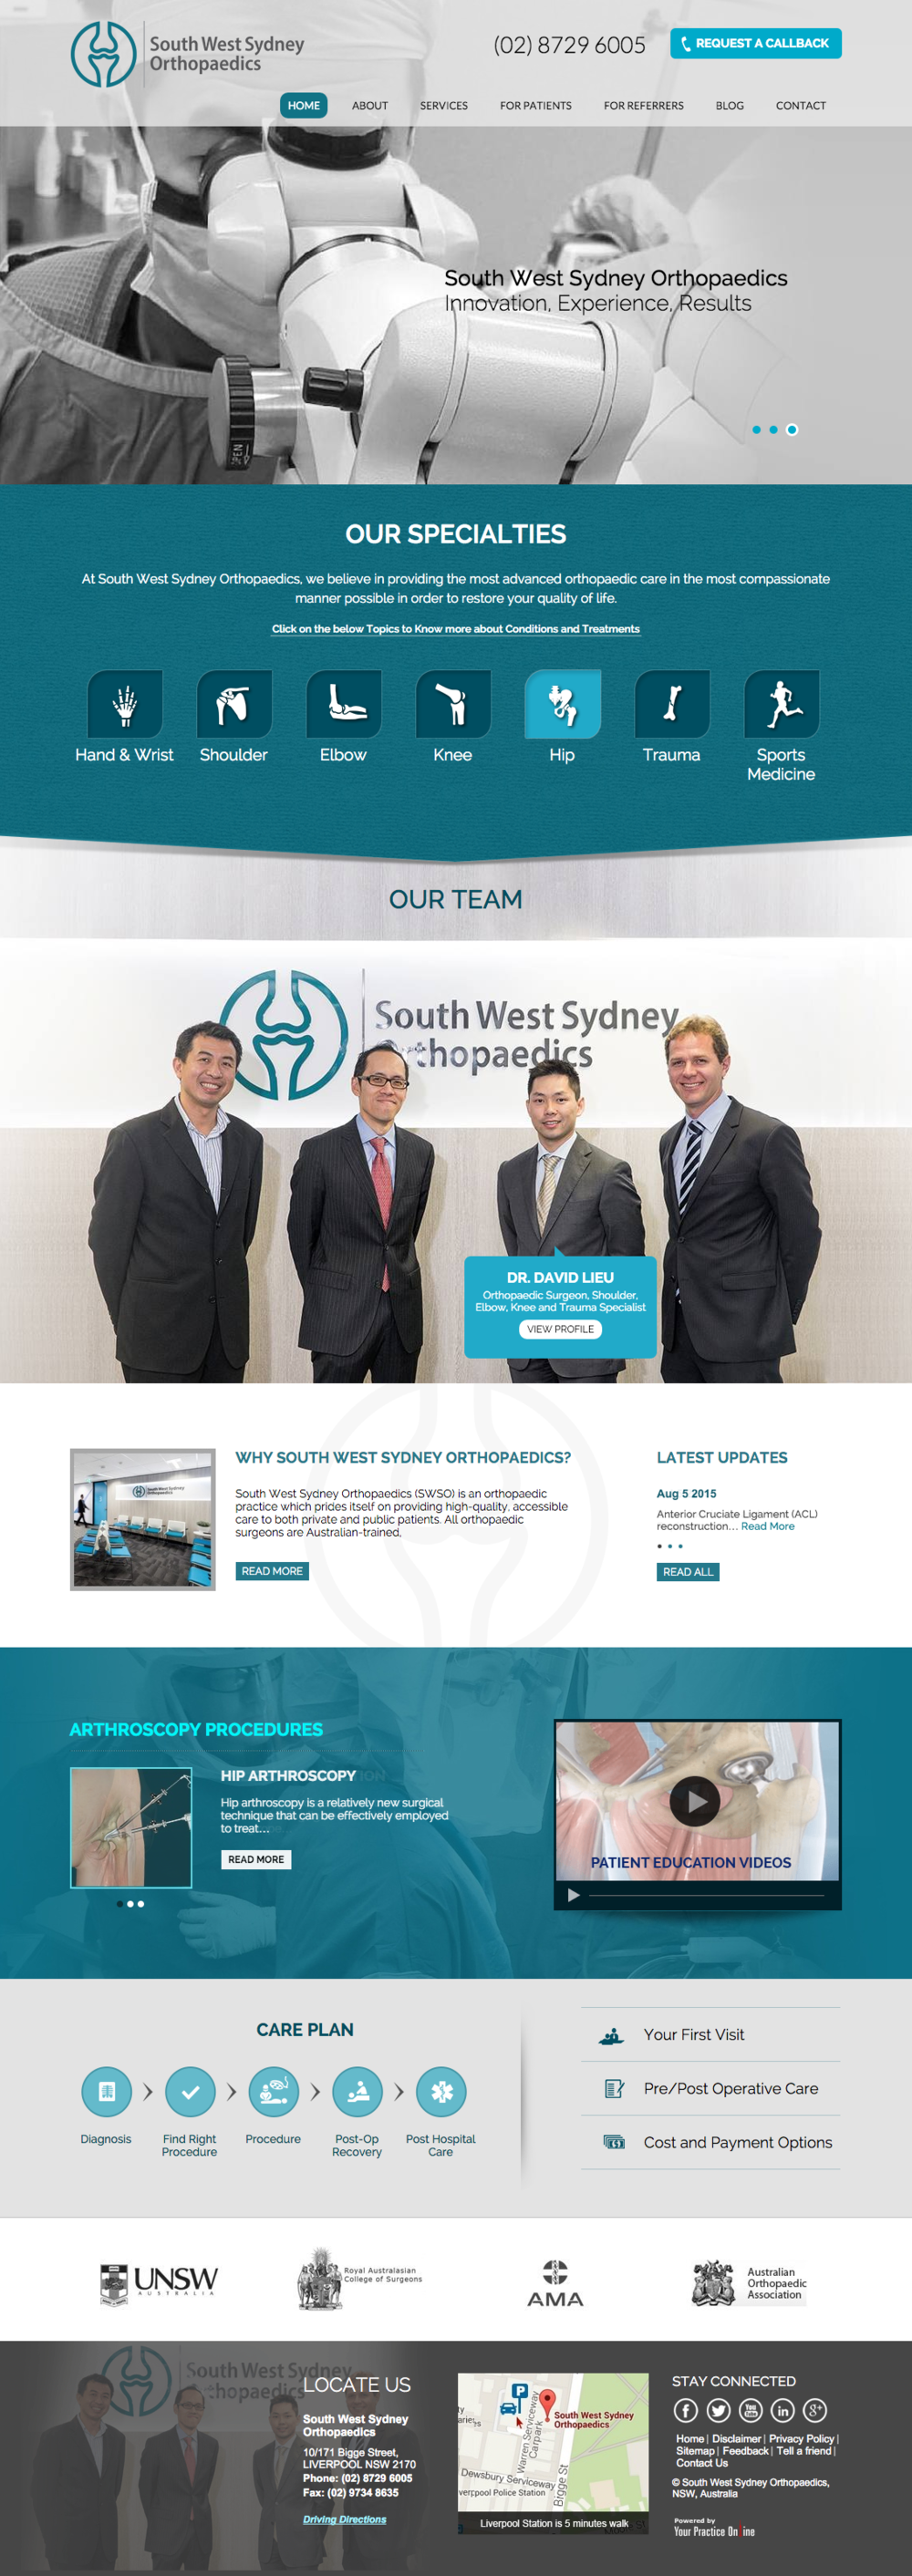 South West Sydney Orthopaedics  NSW  Australia.png